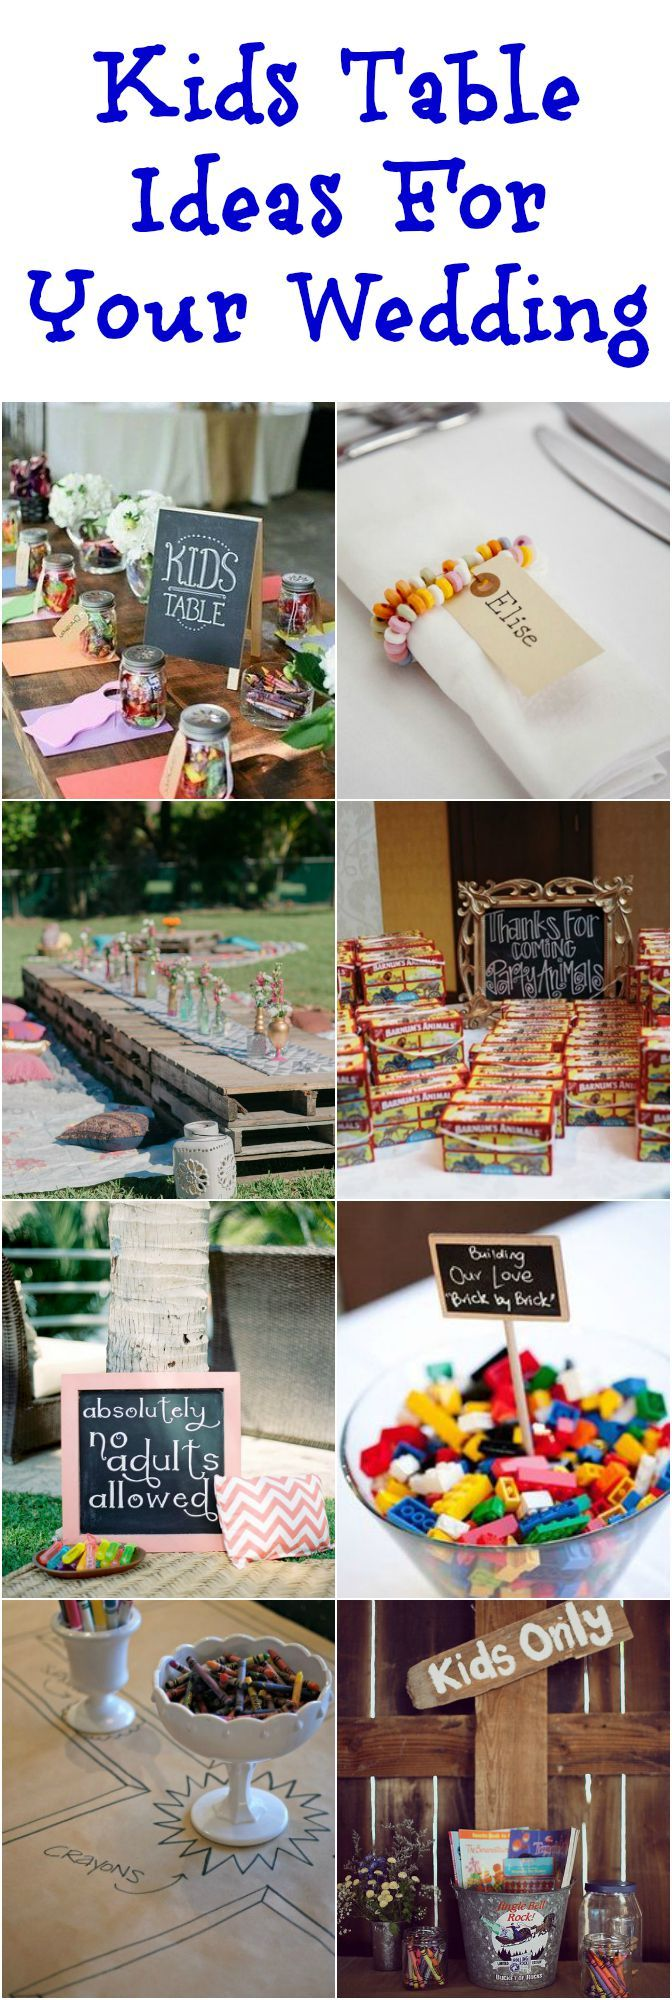 The Best Kids Table Ideas For Your Wedding – Wedding